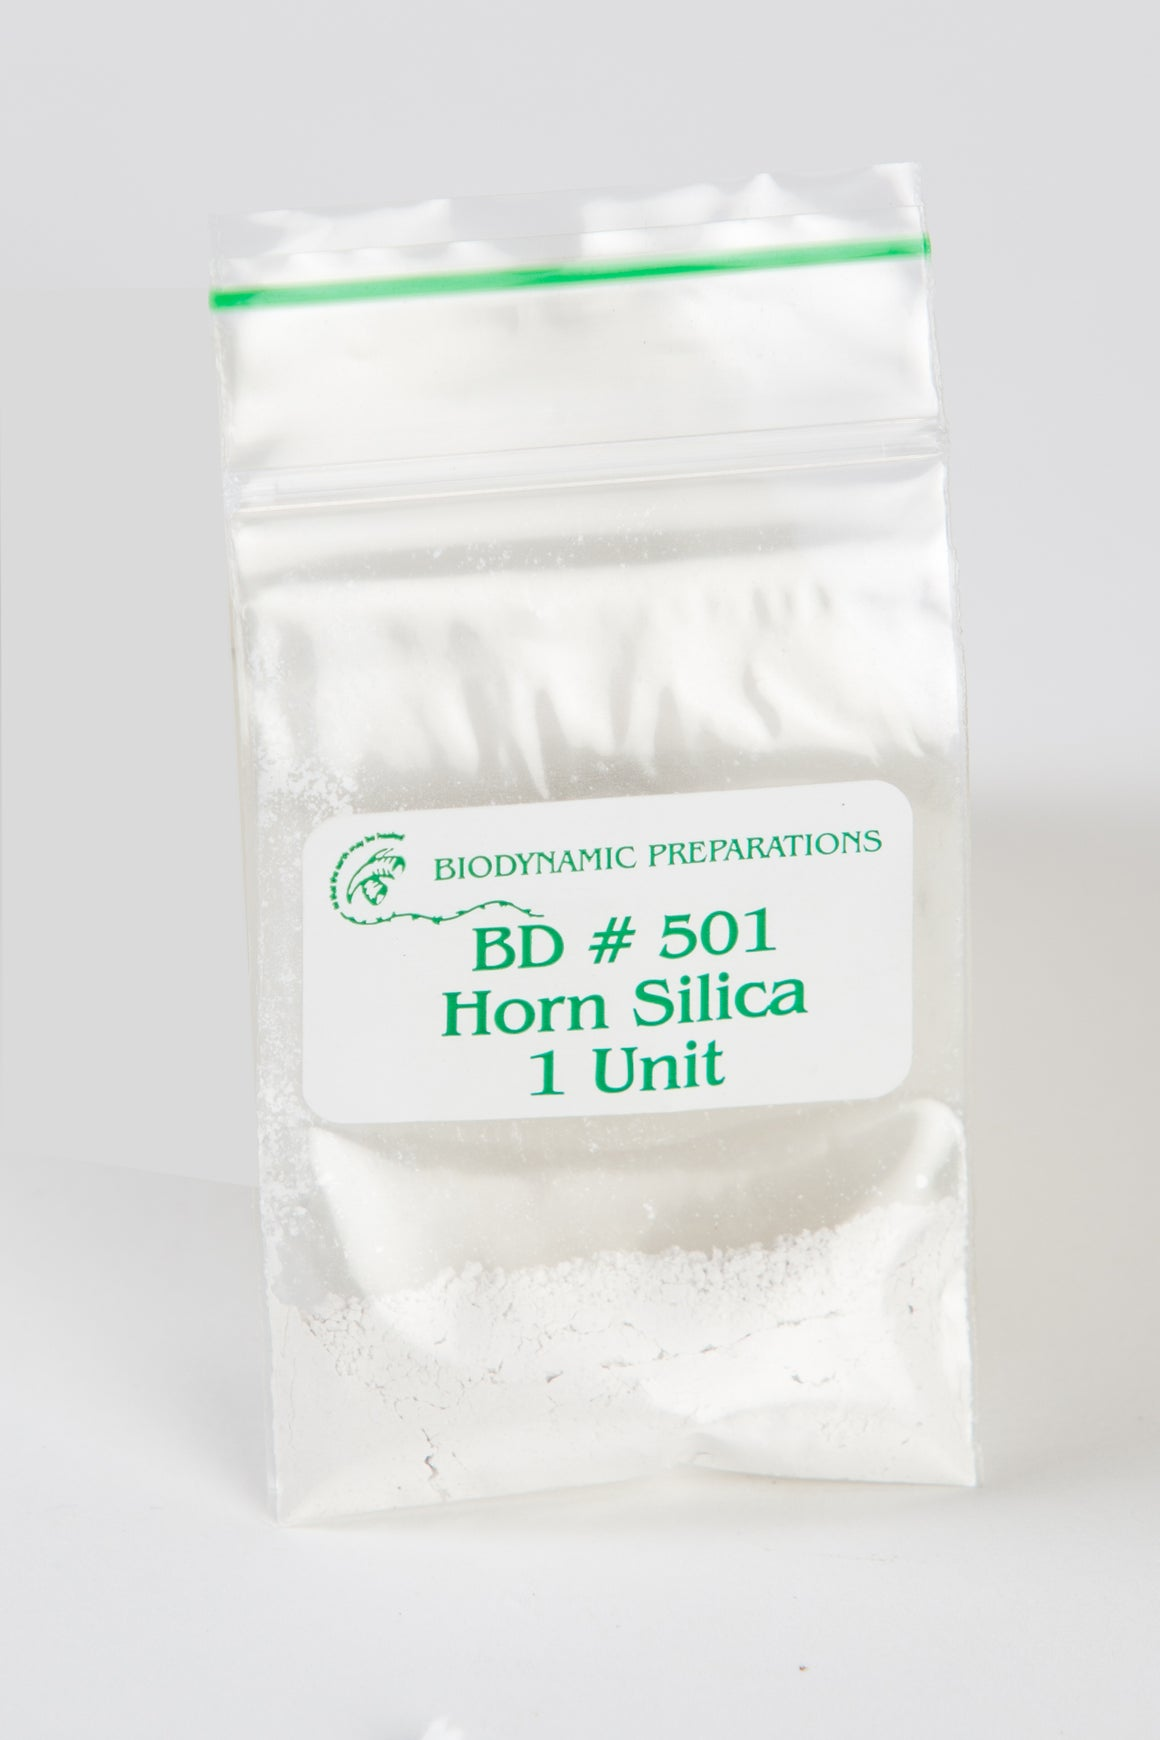 BD #501 Horn Silica (BD Spray Preparation)